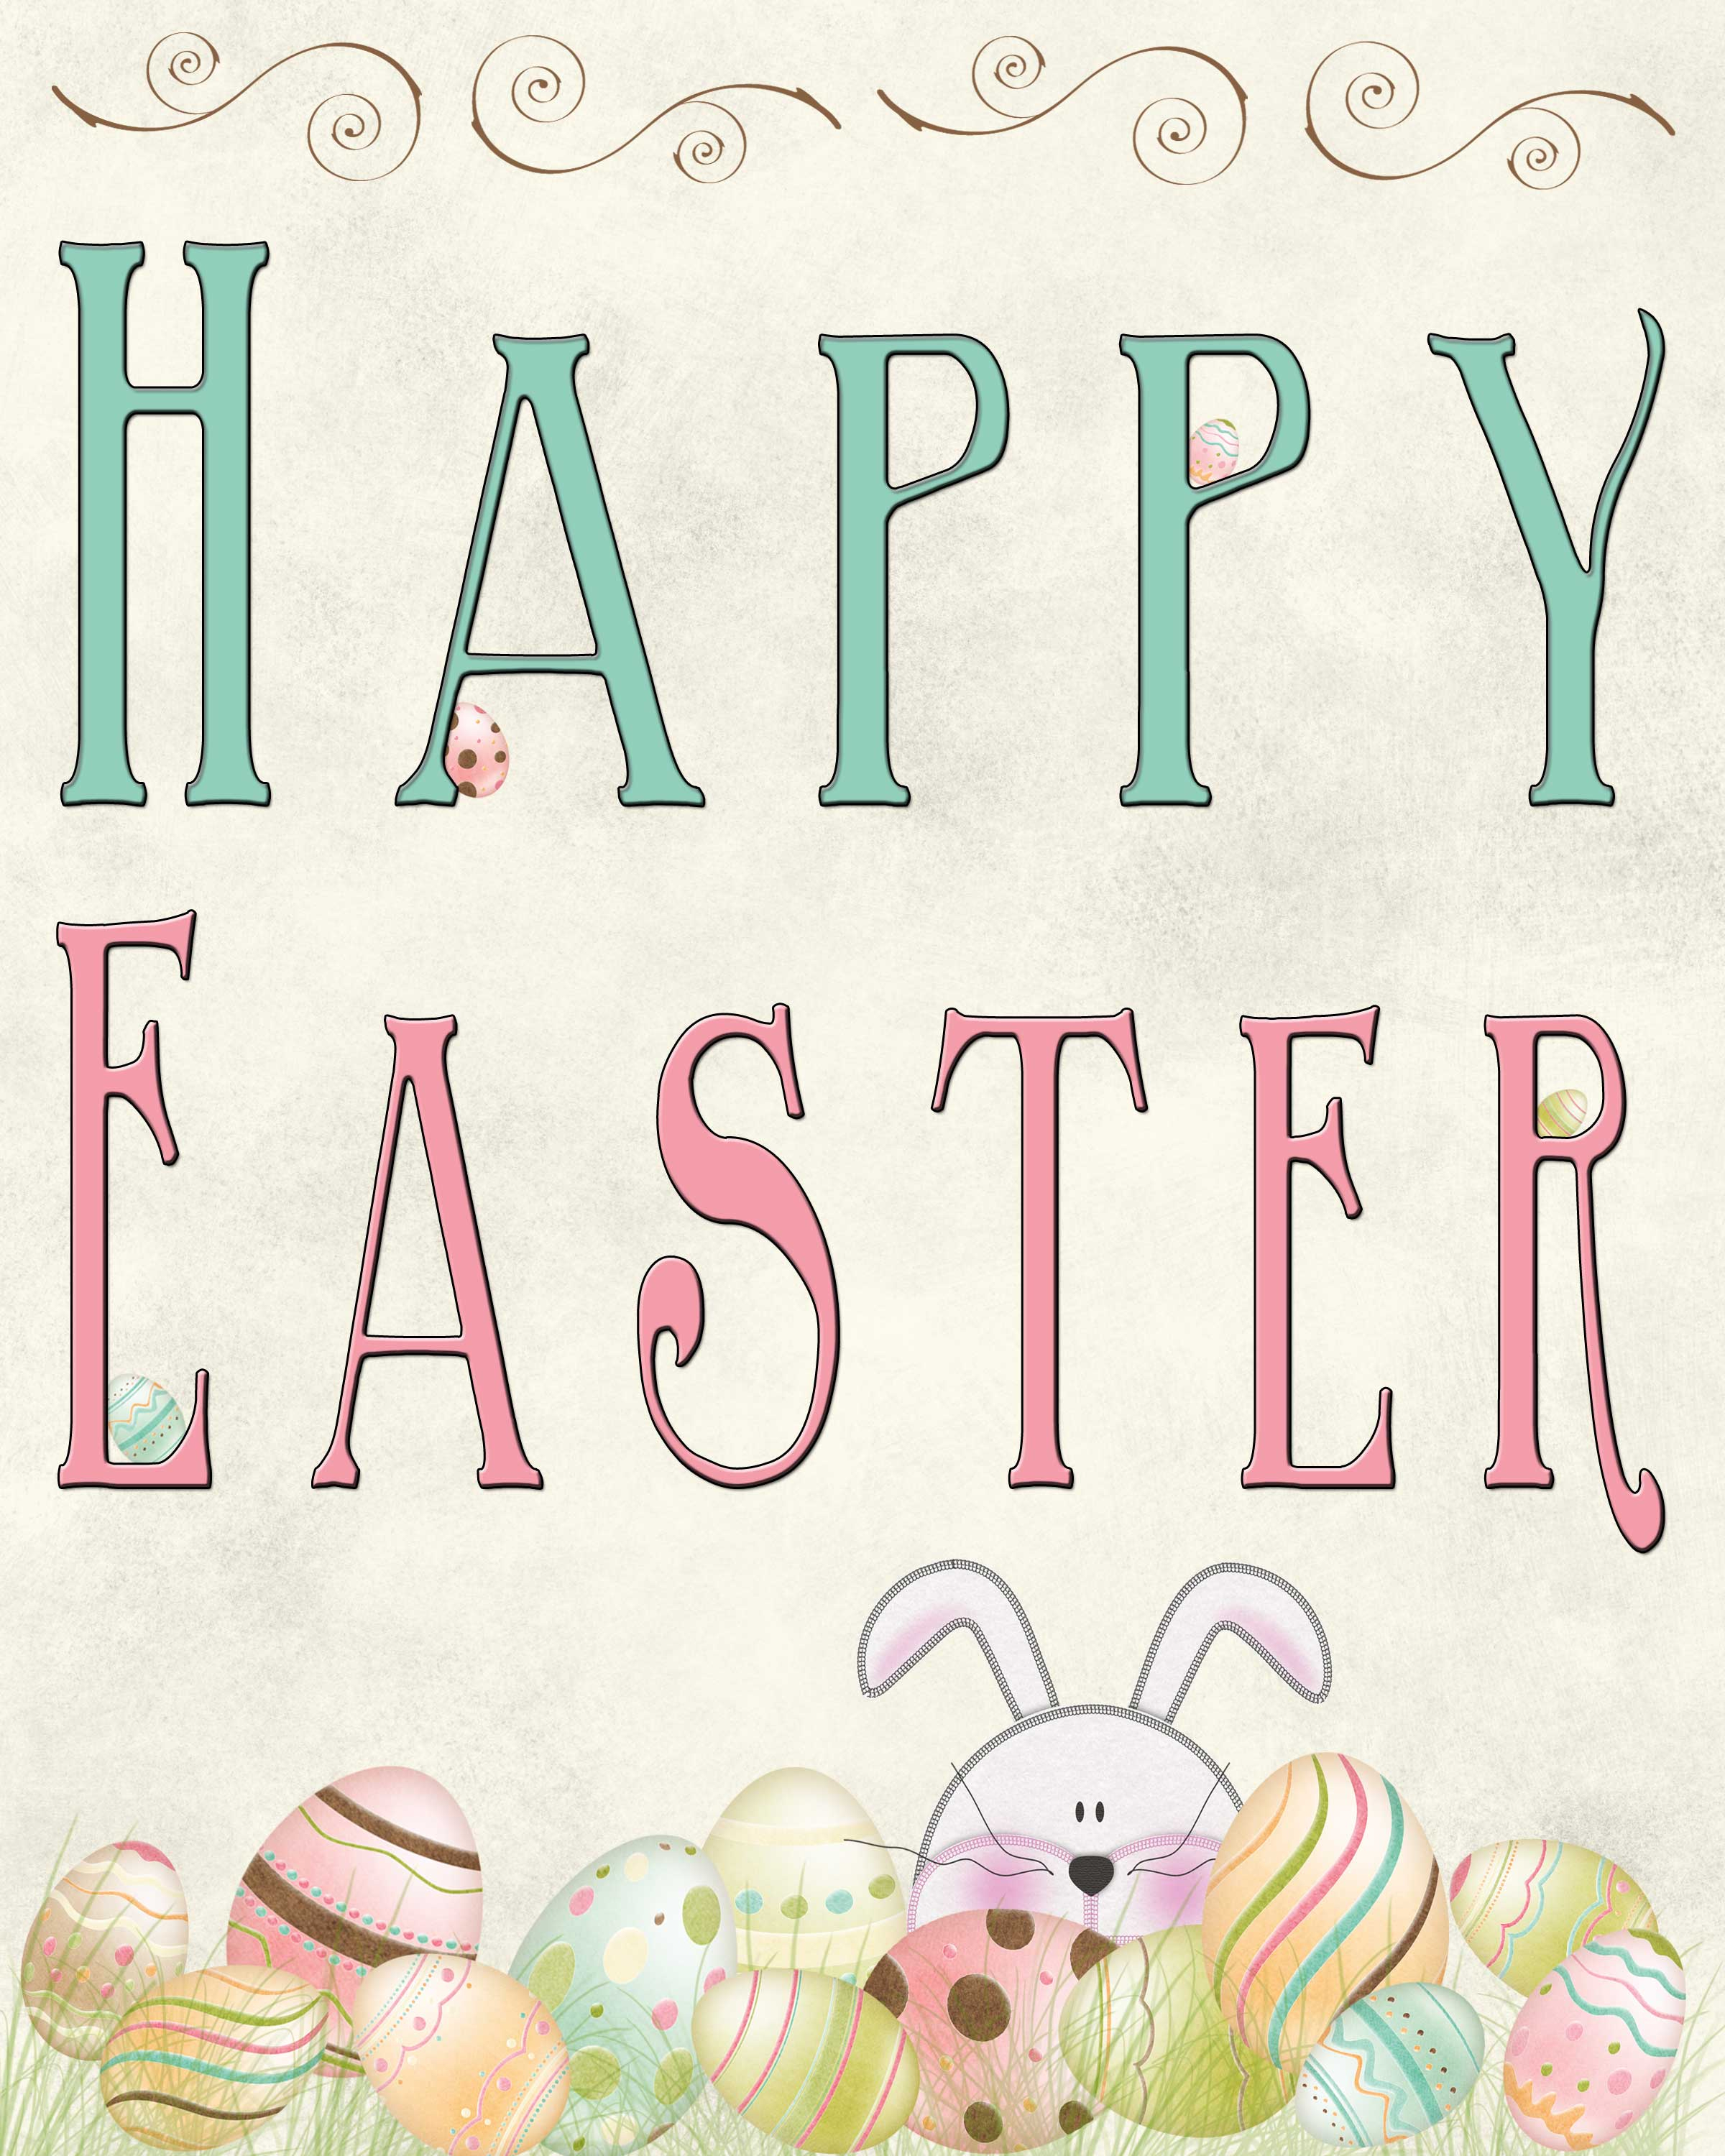 Free Easter Printable - Tgif - This Grandma Is Fun - Free Printable Easter Decorations